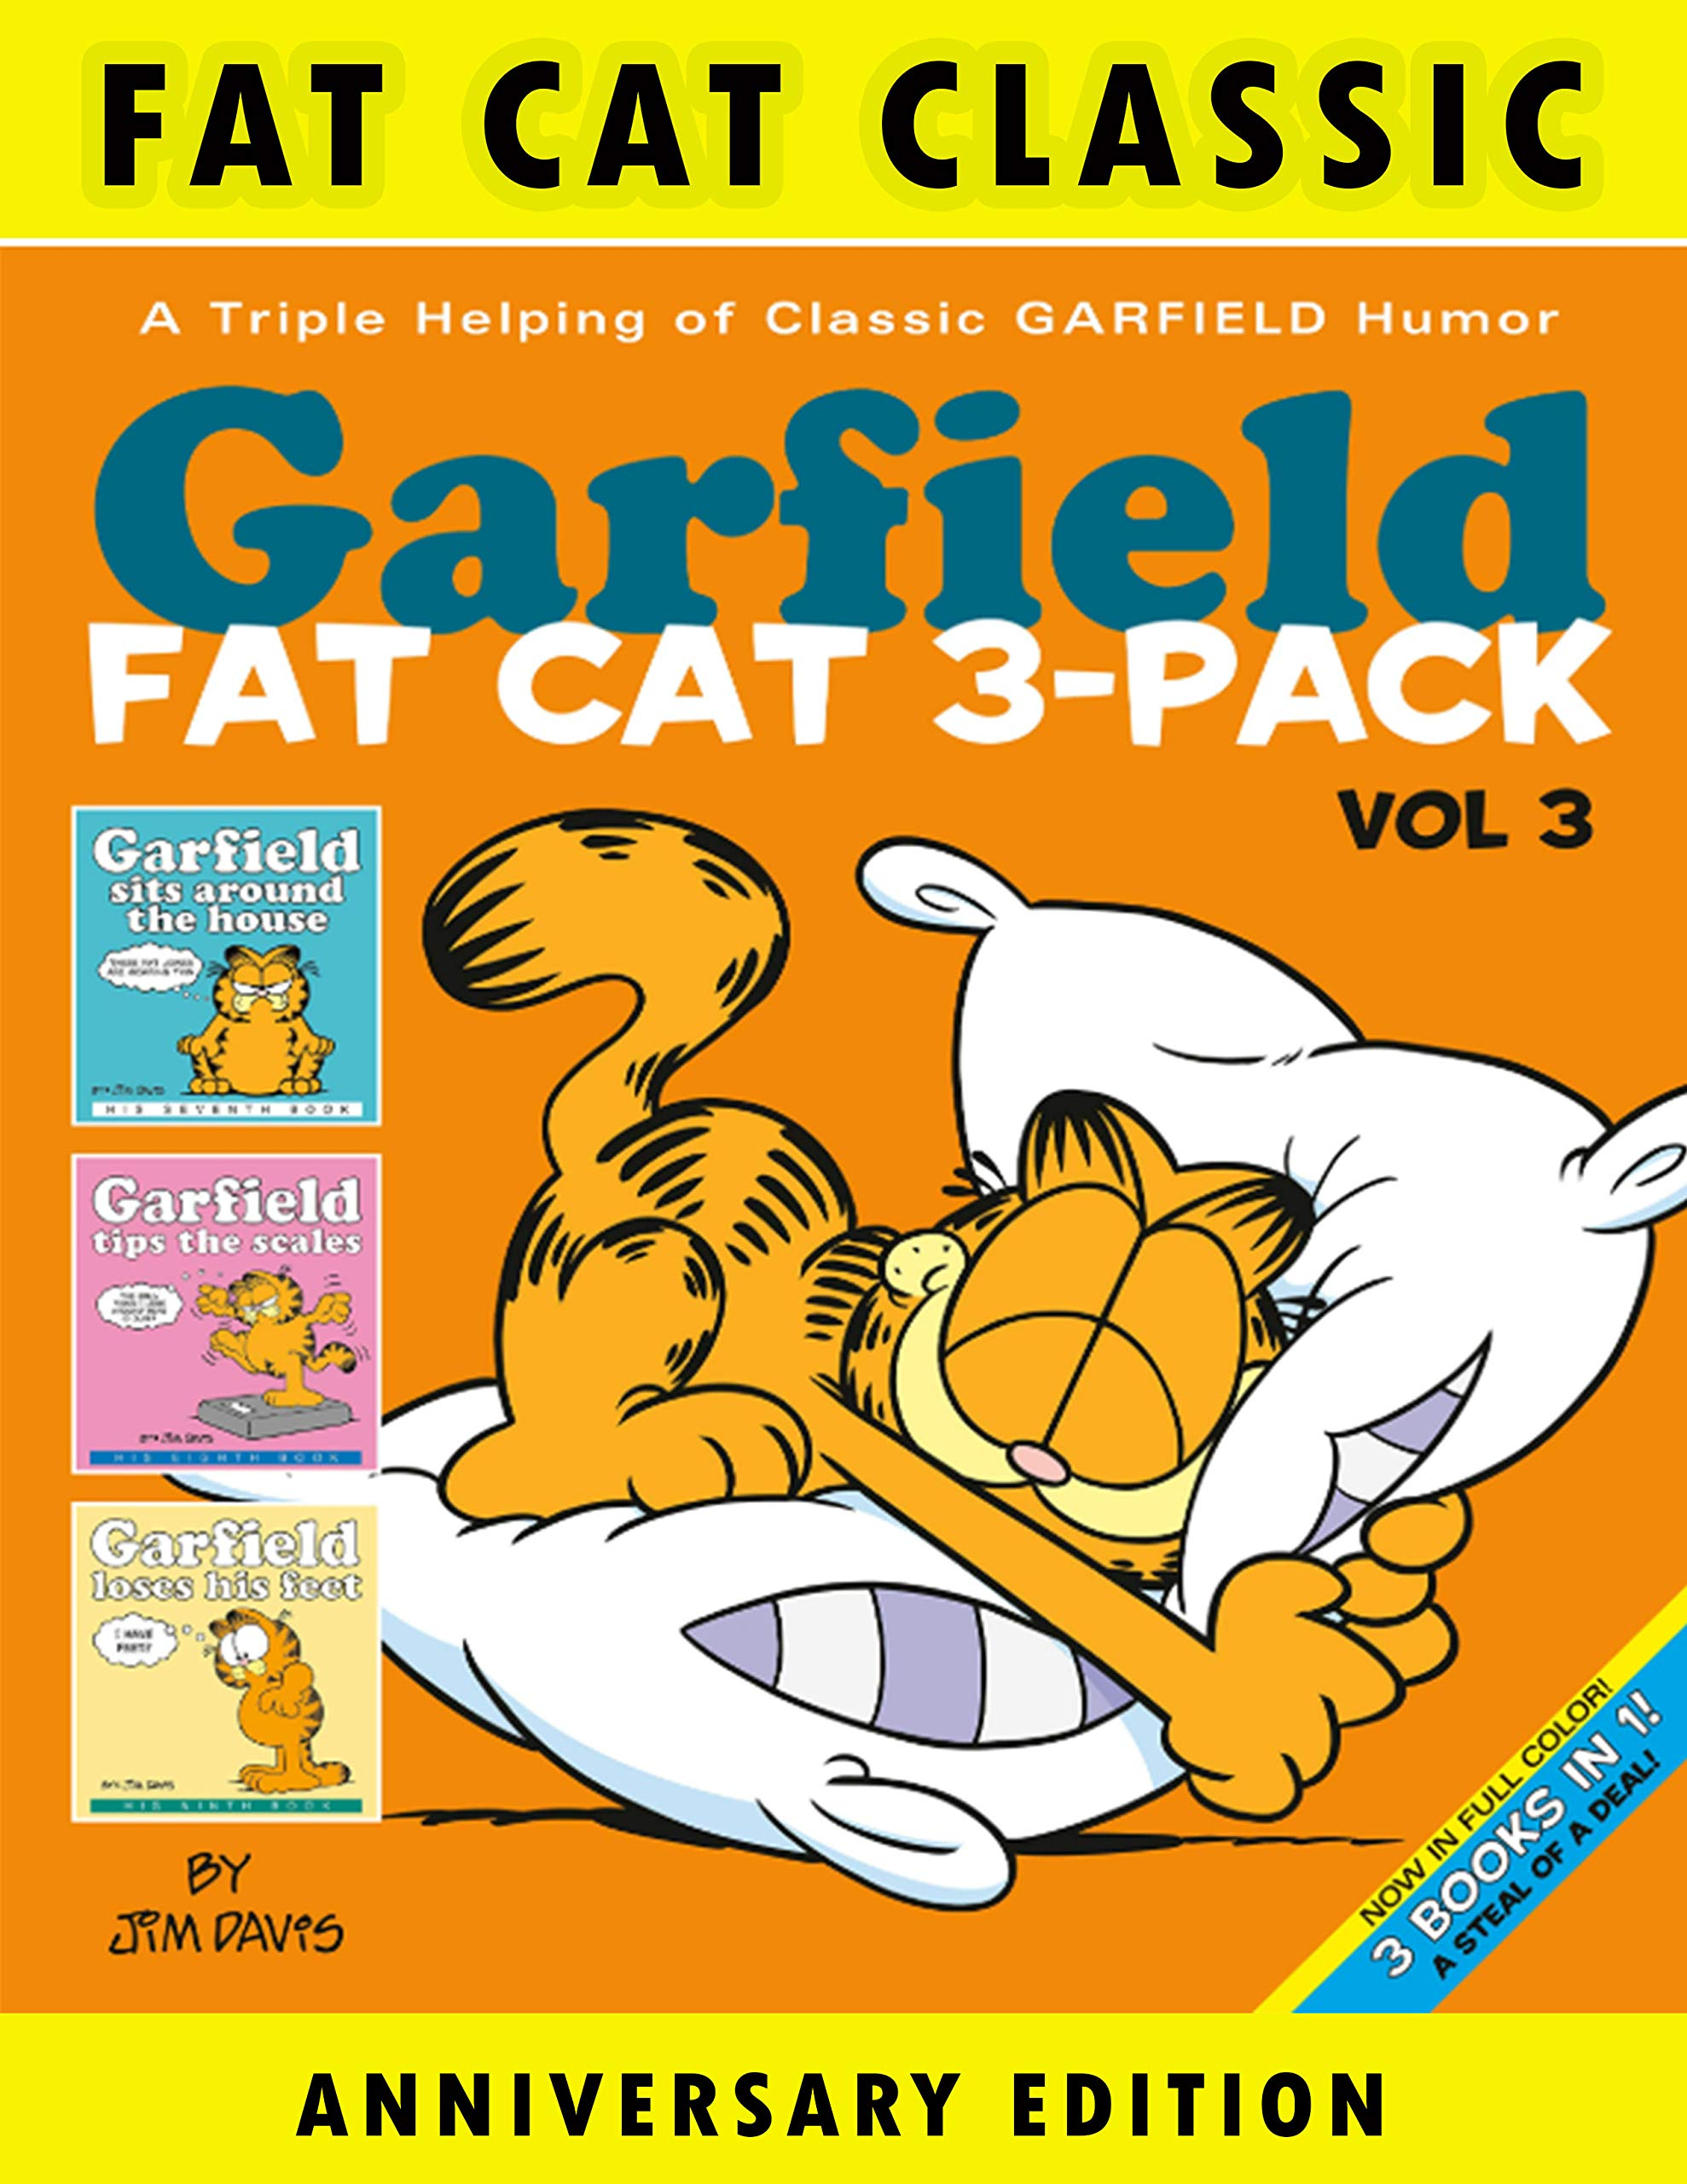 Cat Classic: Collection Book 1 -Great Fat Cat - Cartoon Garfield Comics - Books For Kids- Boys - Girls - Fans - Adults